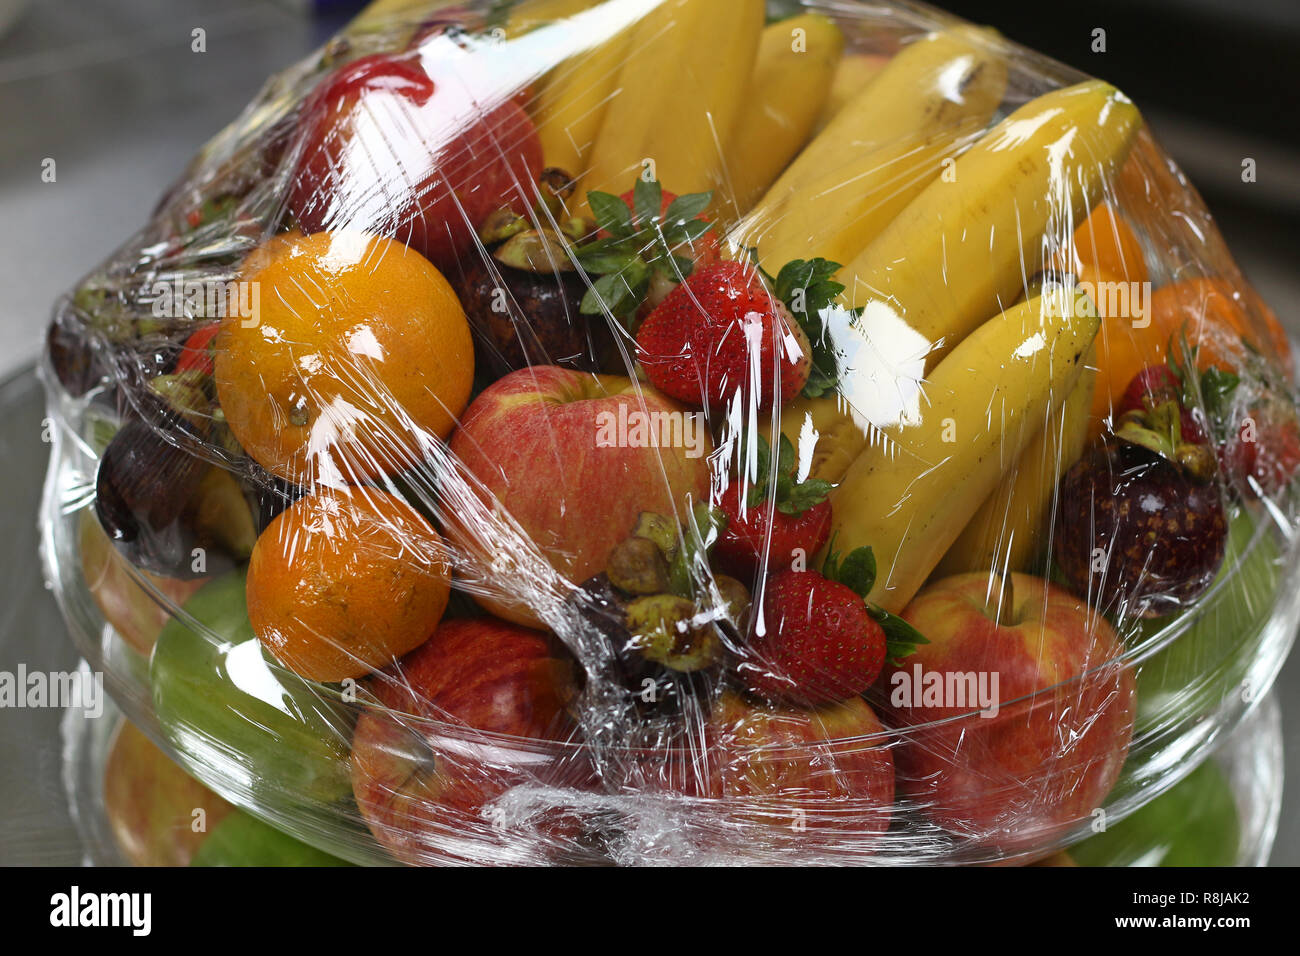 tropical fresh fruits warped in plastic - Stock Image